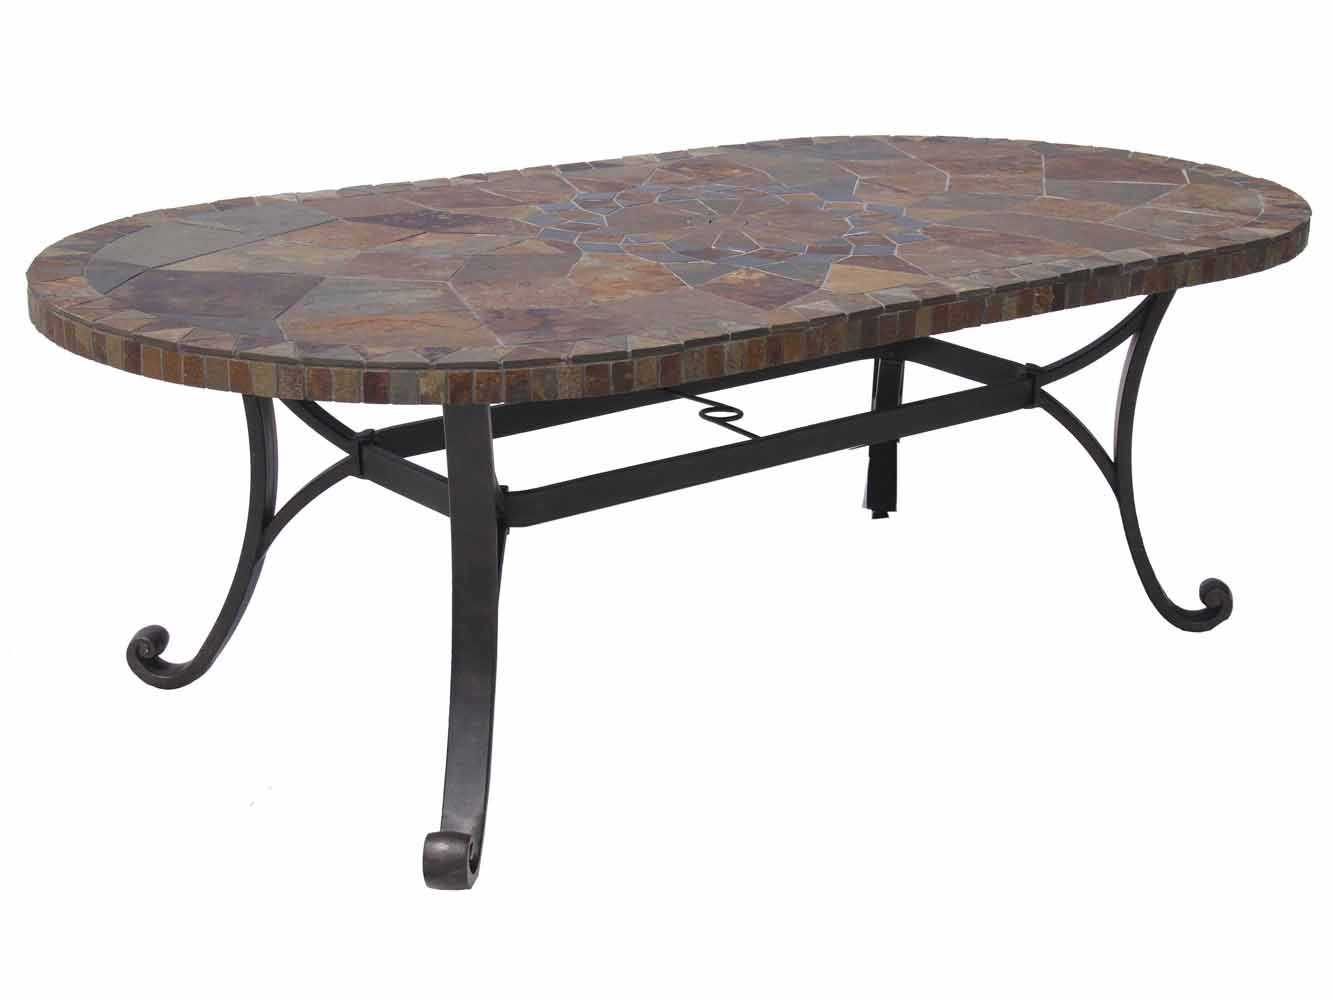 Paragon Casual Carlisa Cast Aluminum 84 X 44 Oval Dining Table